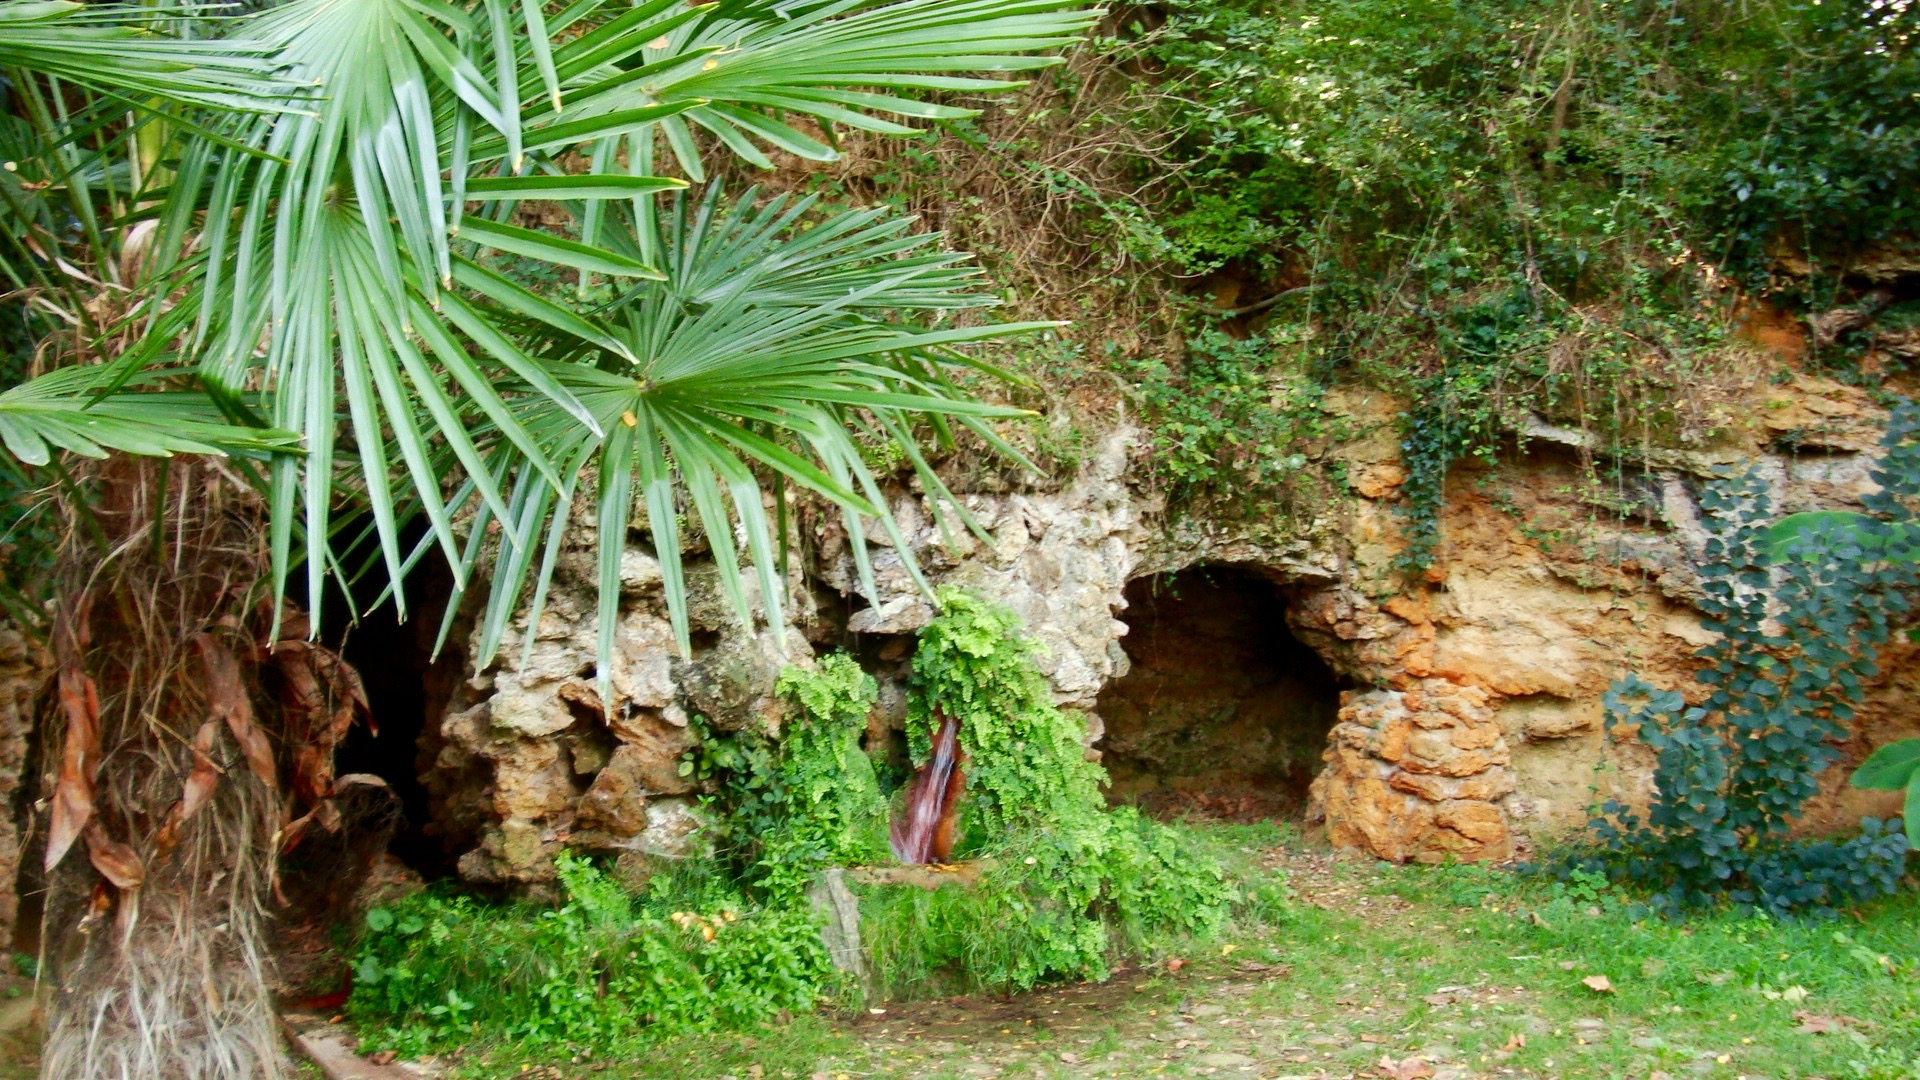 Campagne-les-Bains, France - Spring, Cave, and Palm.jpg